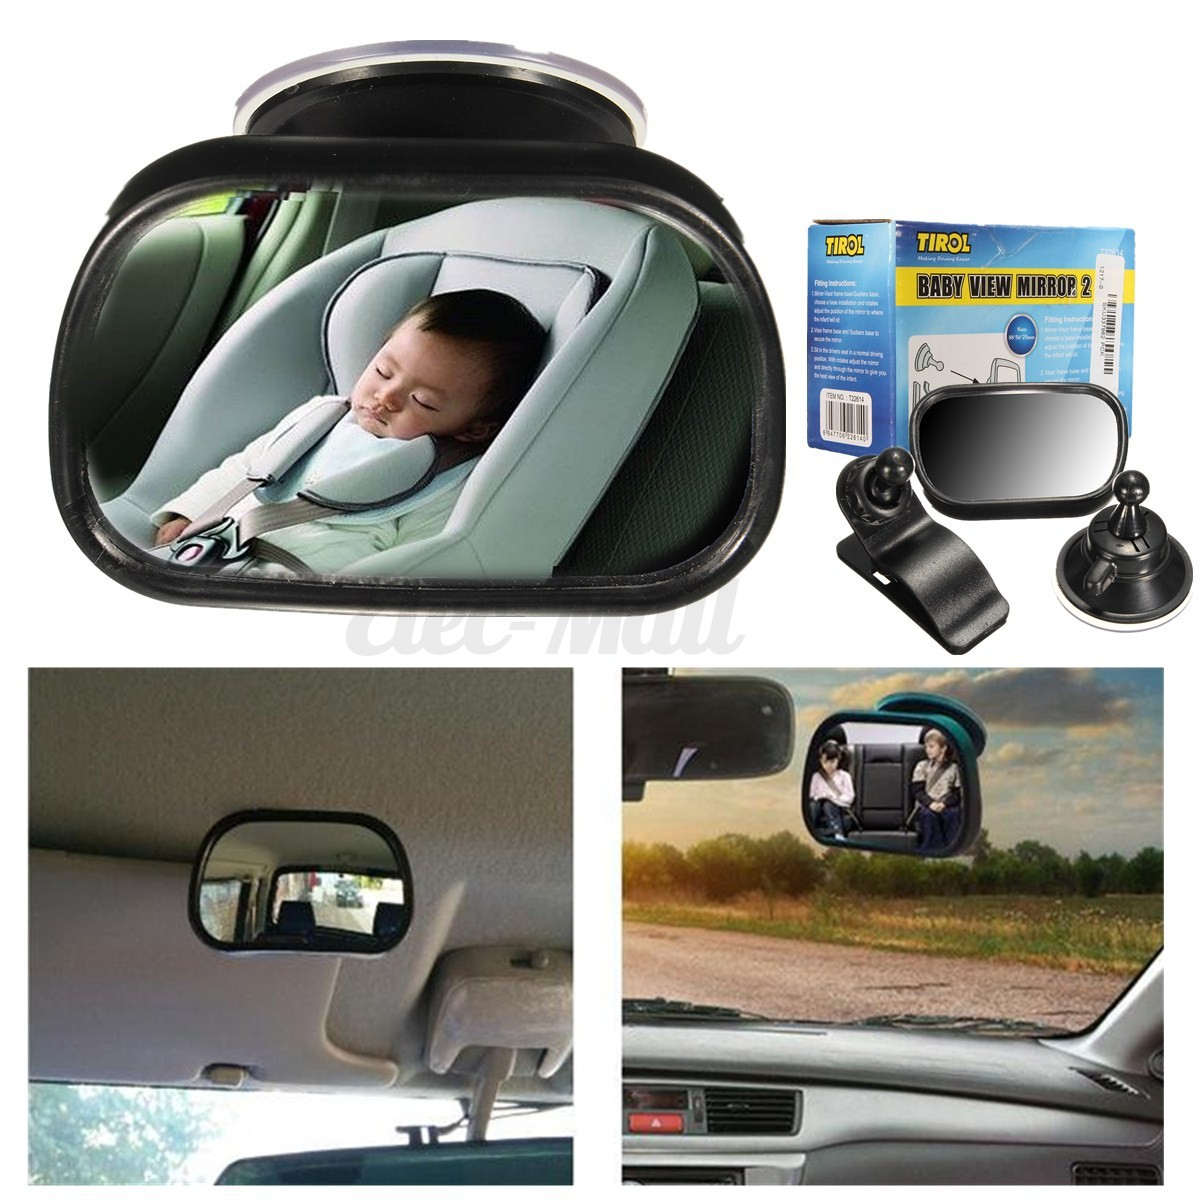 Baby Car Mirror Back Seat Glass Rear Facing Safety View For Infant